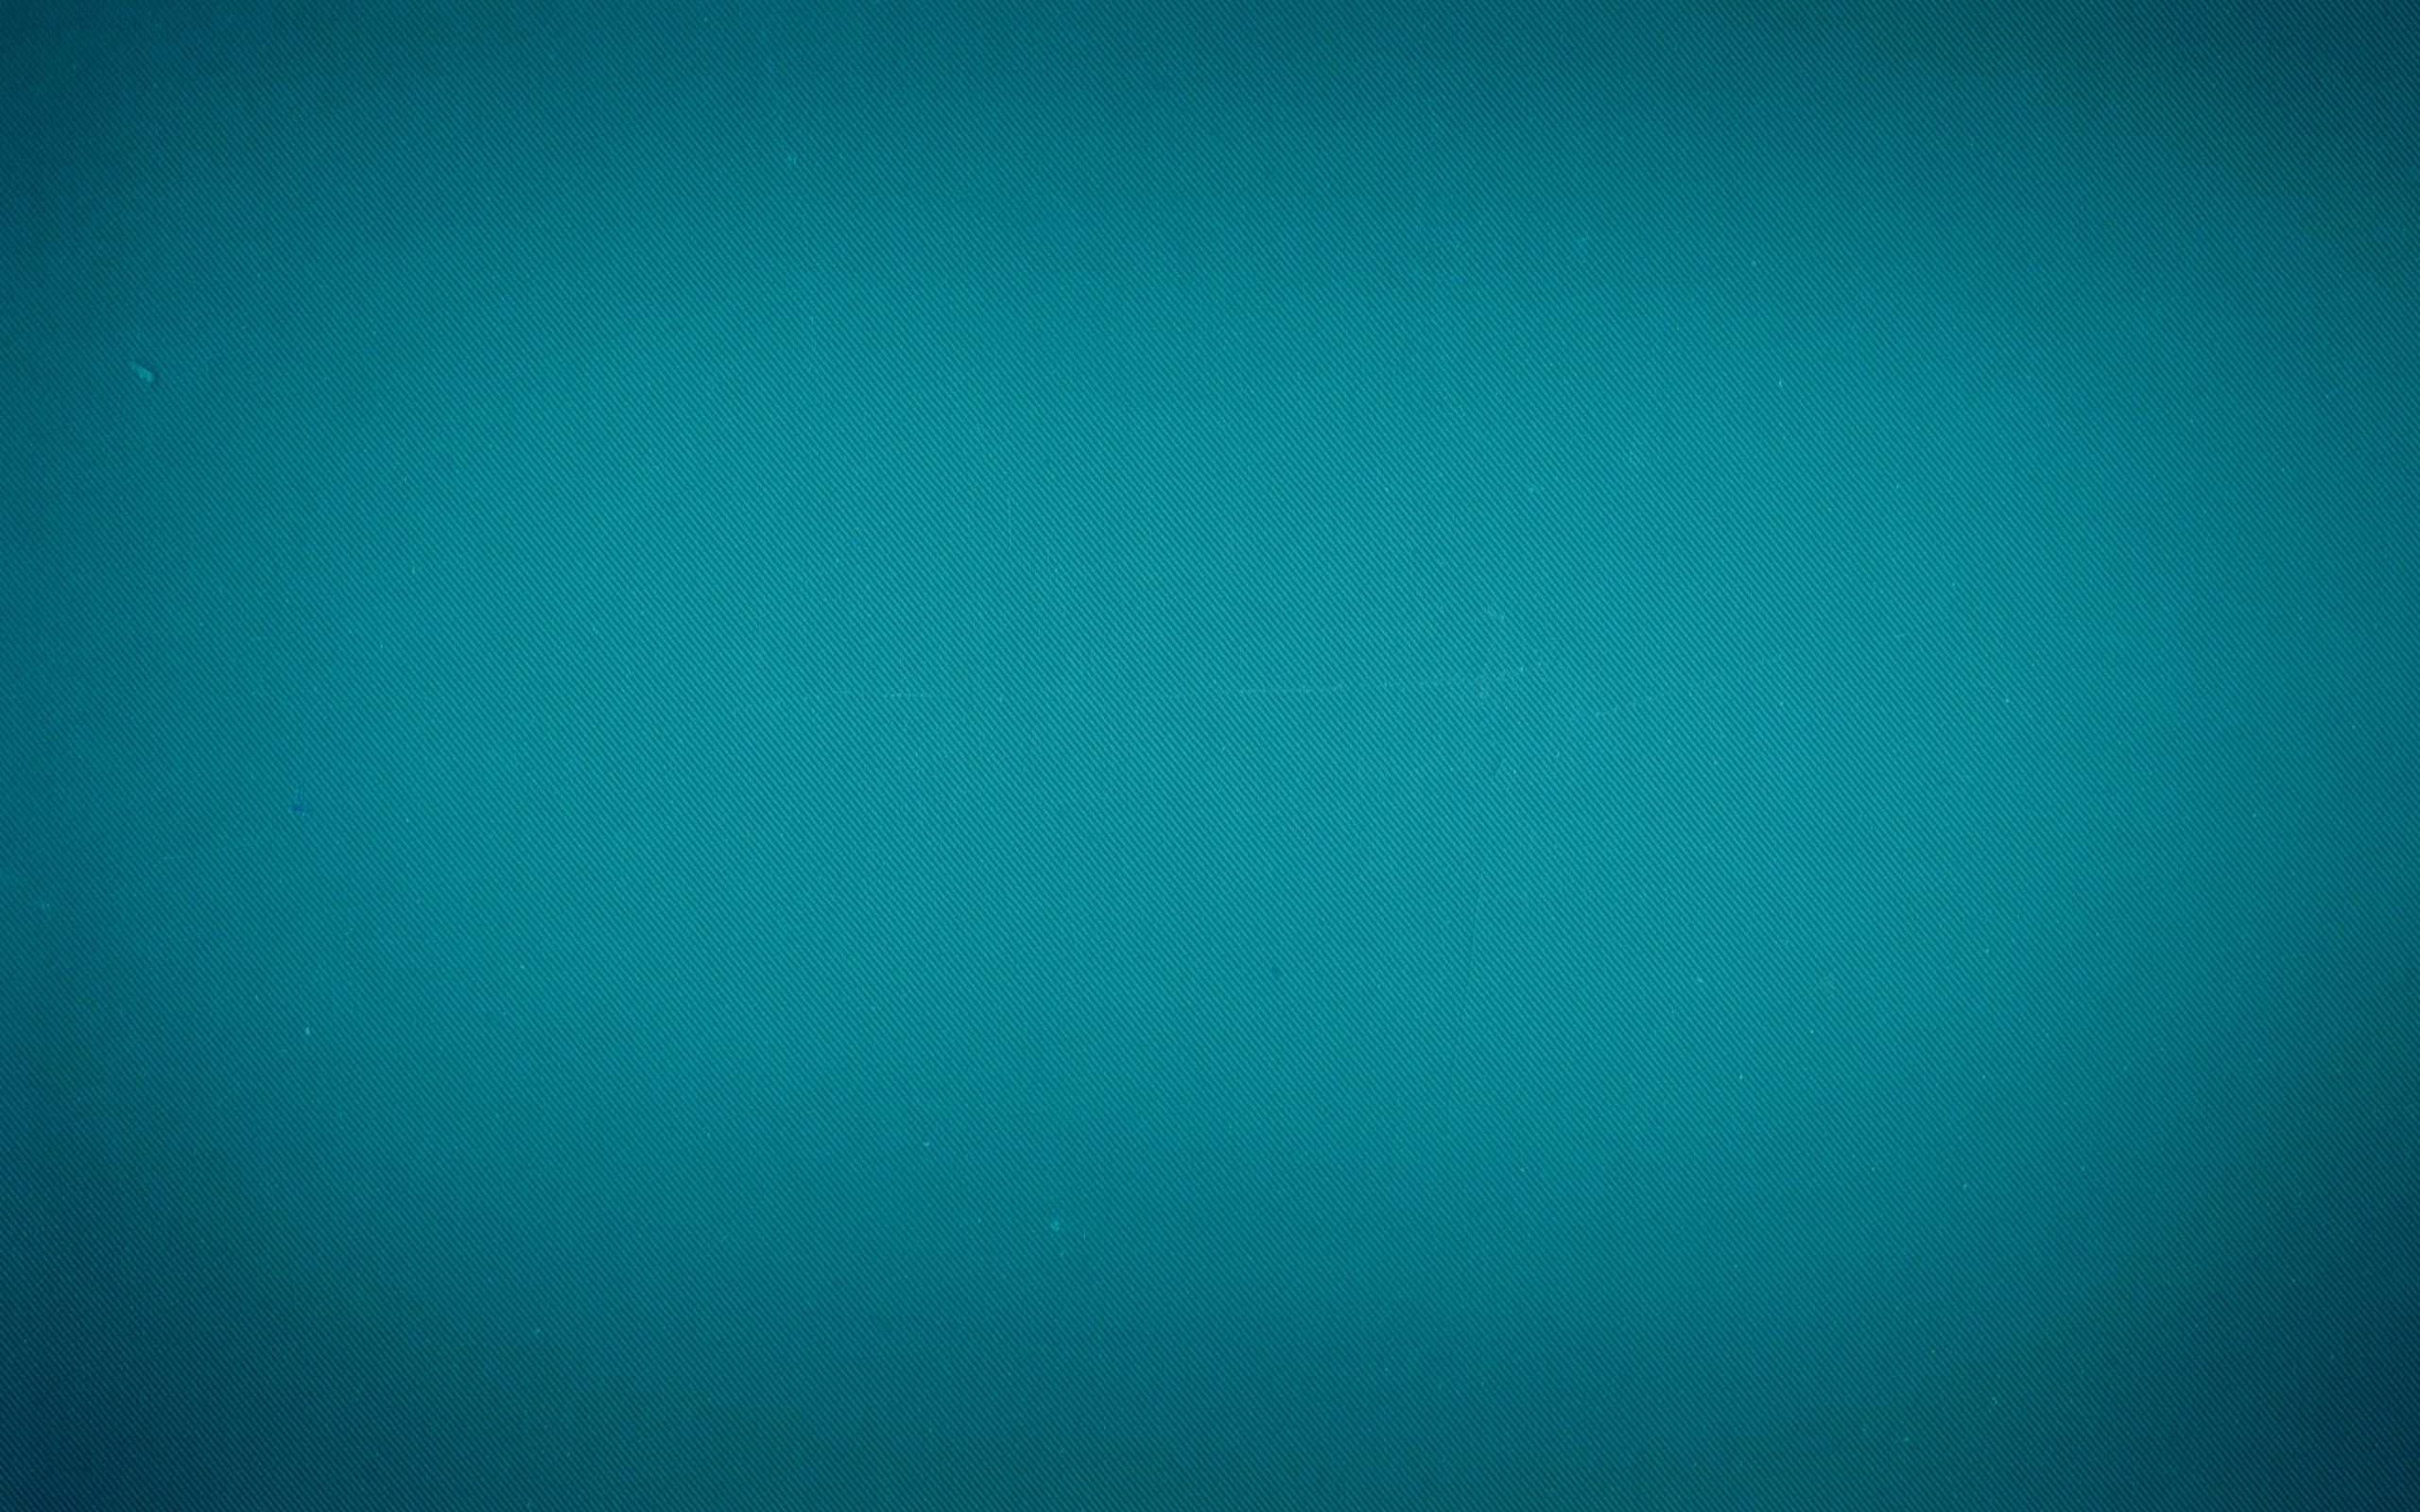 Turquoise texture, background wallpapers and images - wallpapers ...